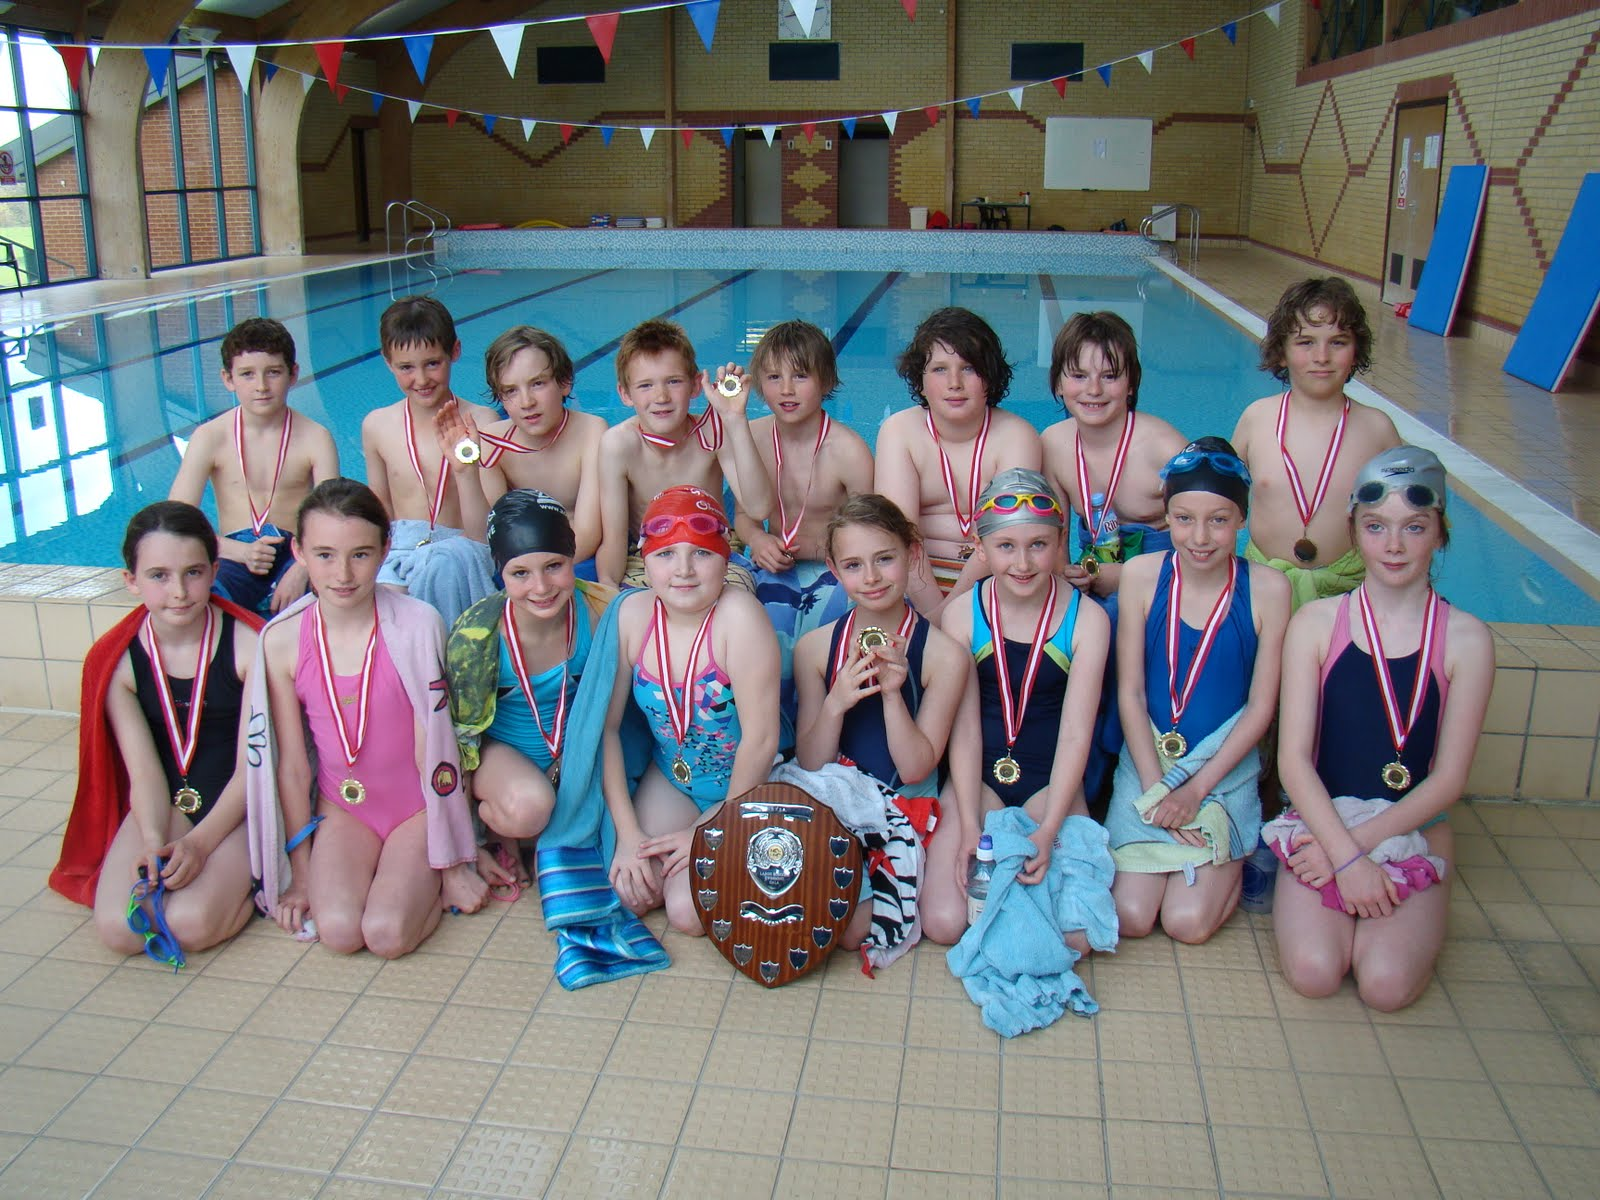 Junior High Girls Swimwear http://hitchamsevents.blogspot.com/2010/04/swimming-team-wins-inter-school-gala.html